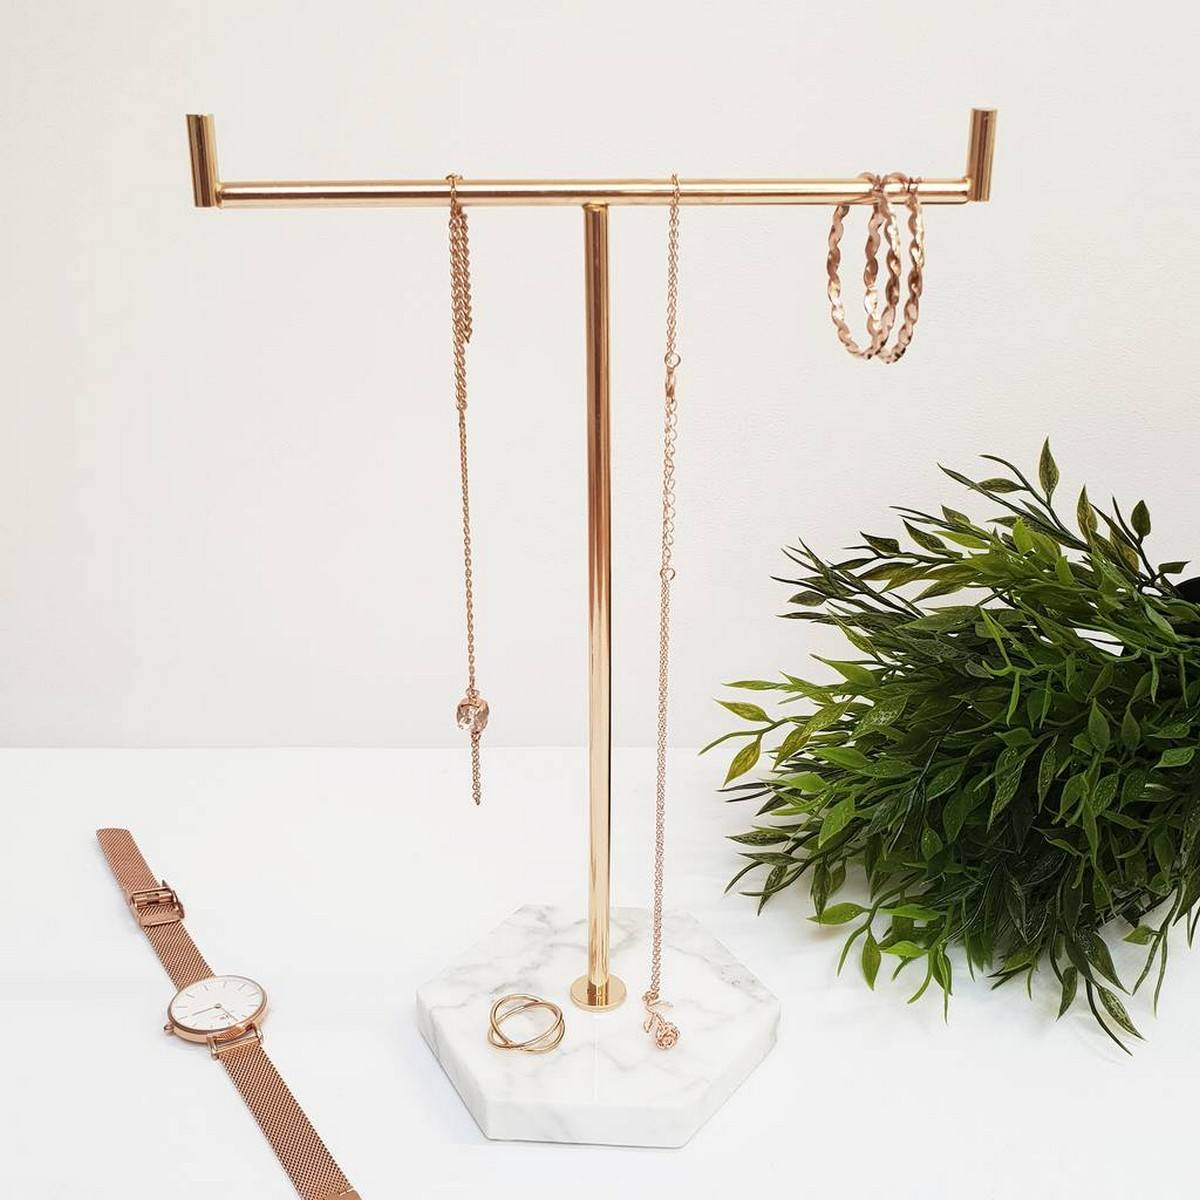 Jewellery Stand Designs : Unique necklace holder stand ideas that would make great gifts